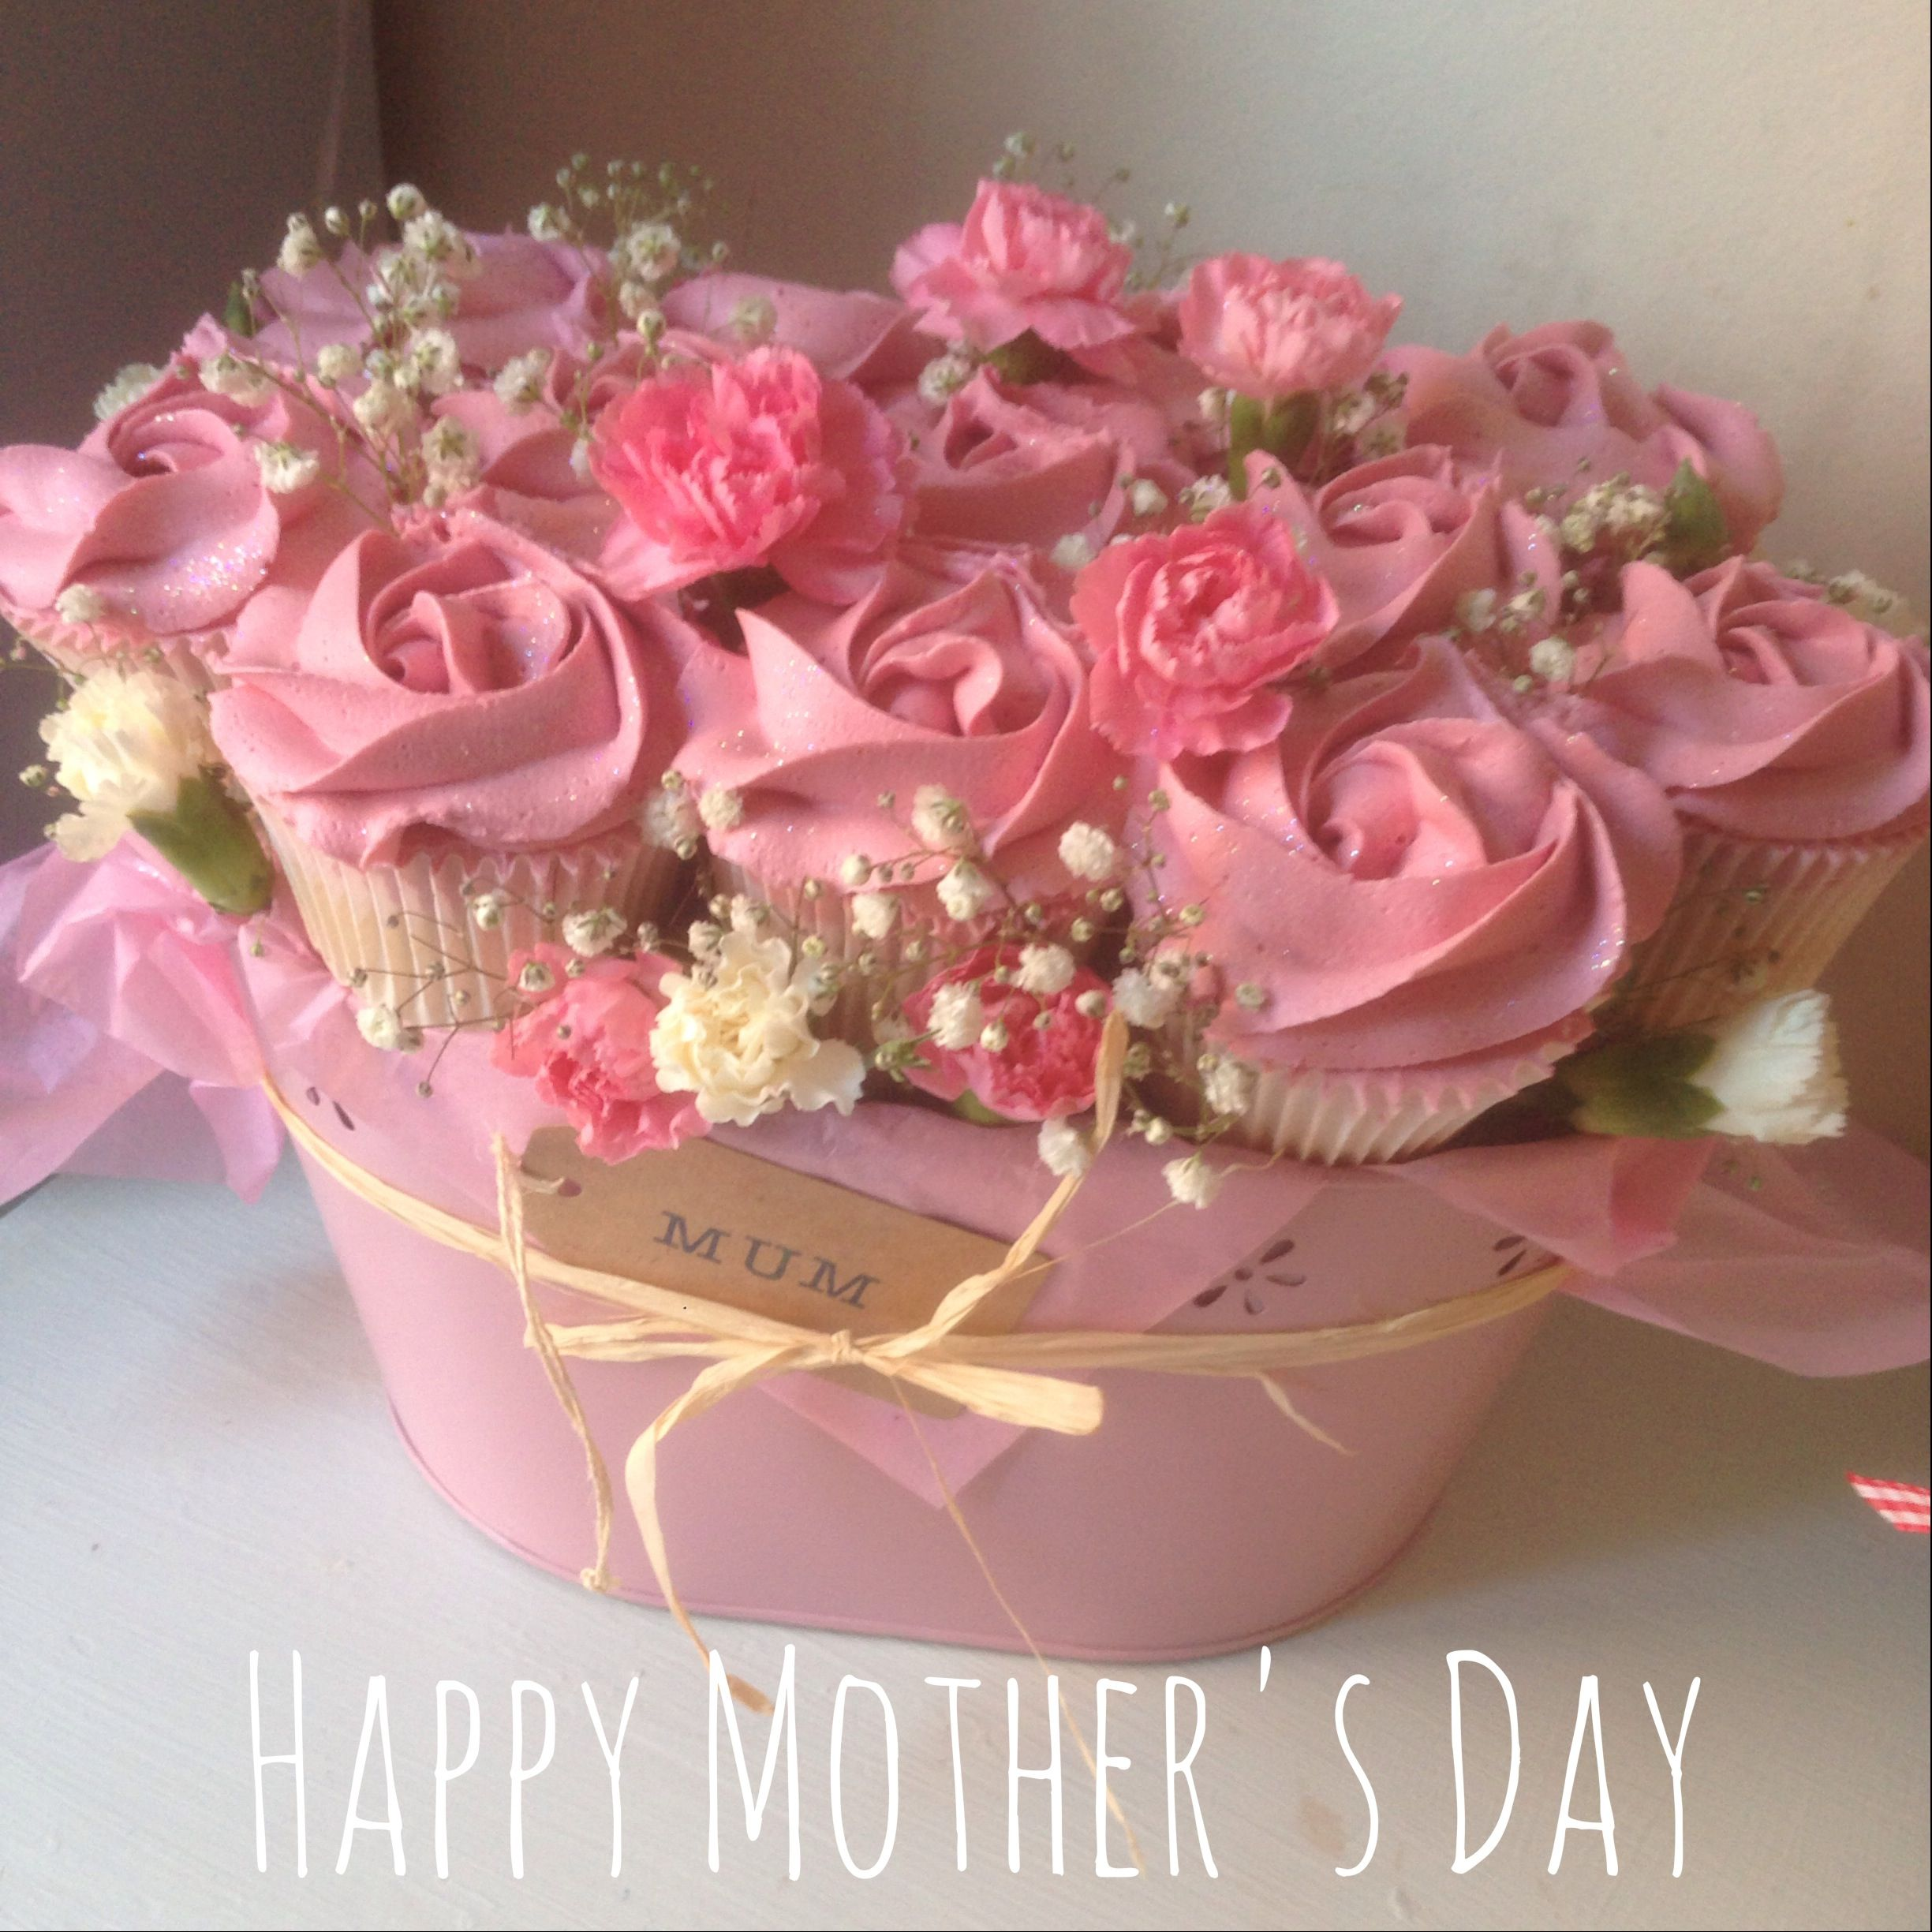 Flower Basket Mothers Day Cake : Mother s day cupcake bouquet bouquets